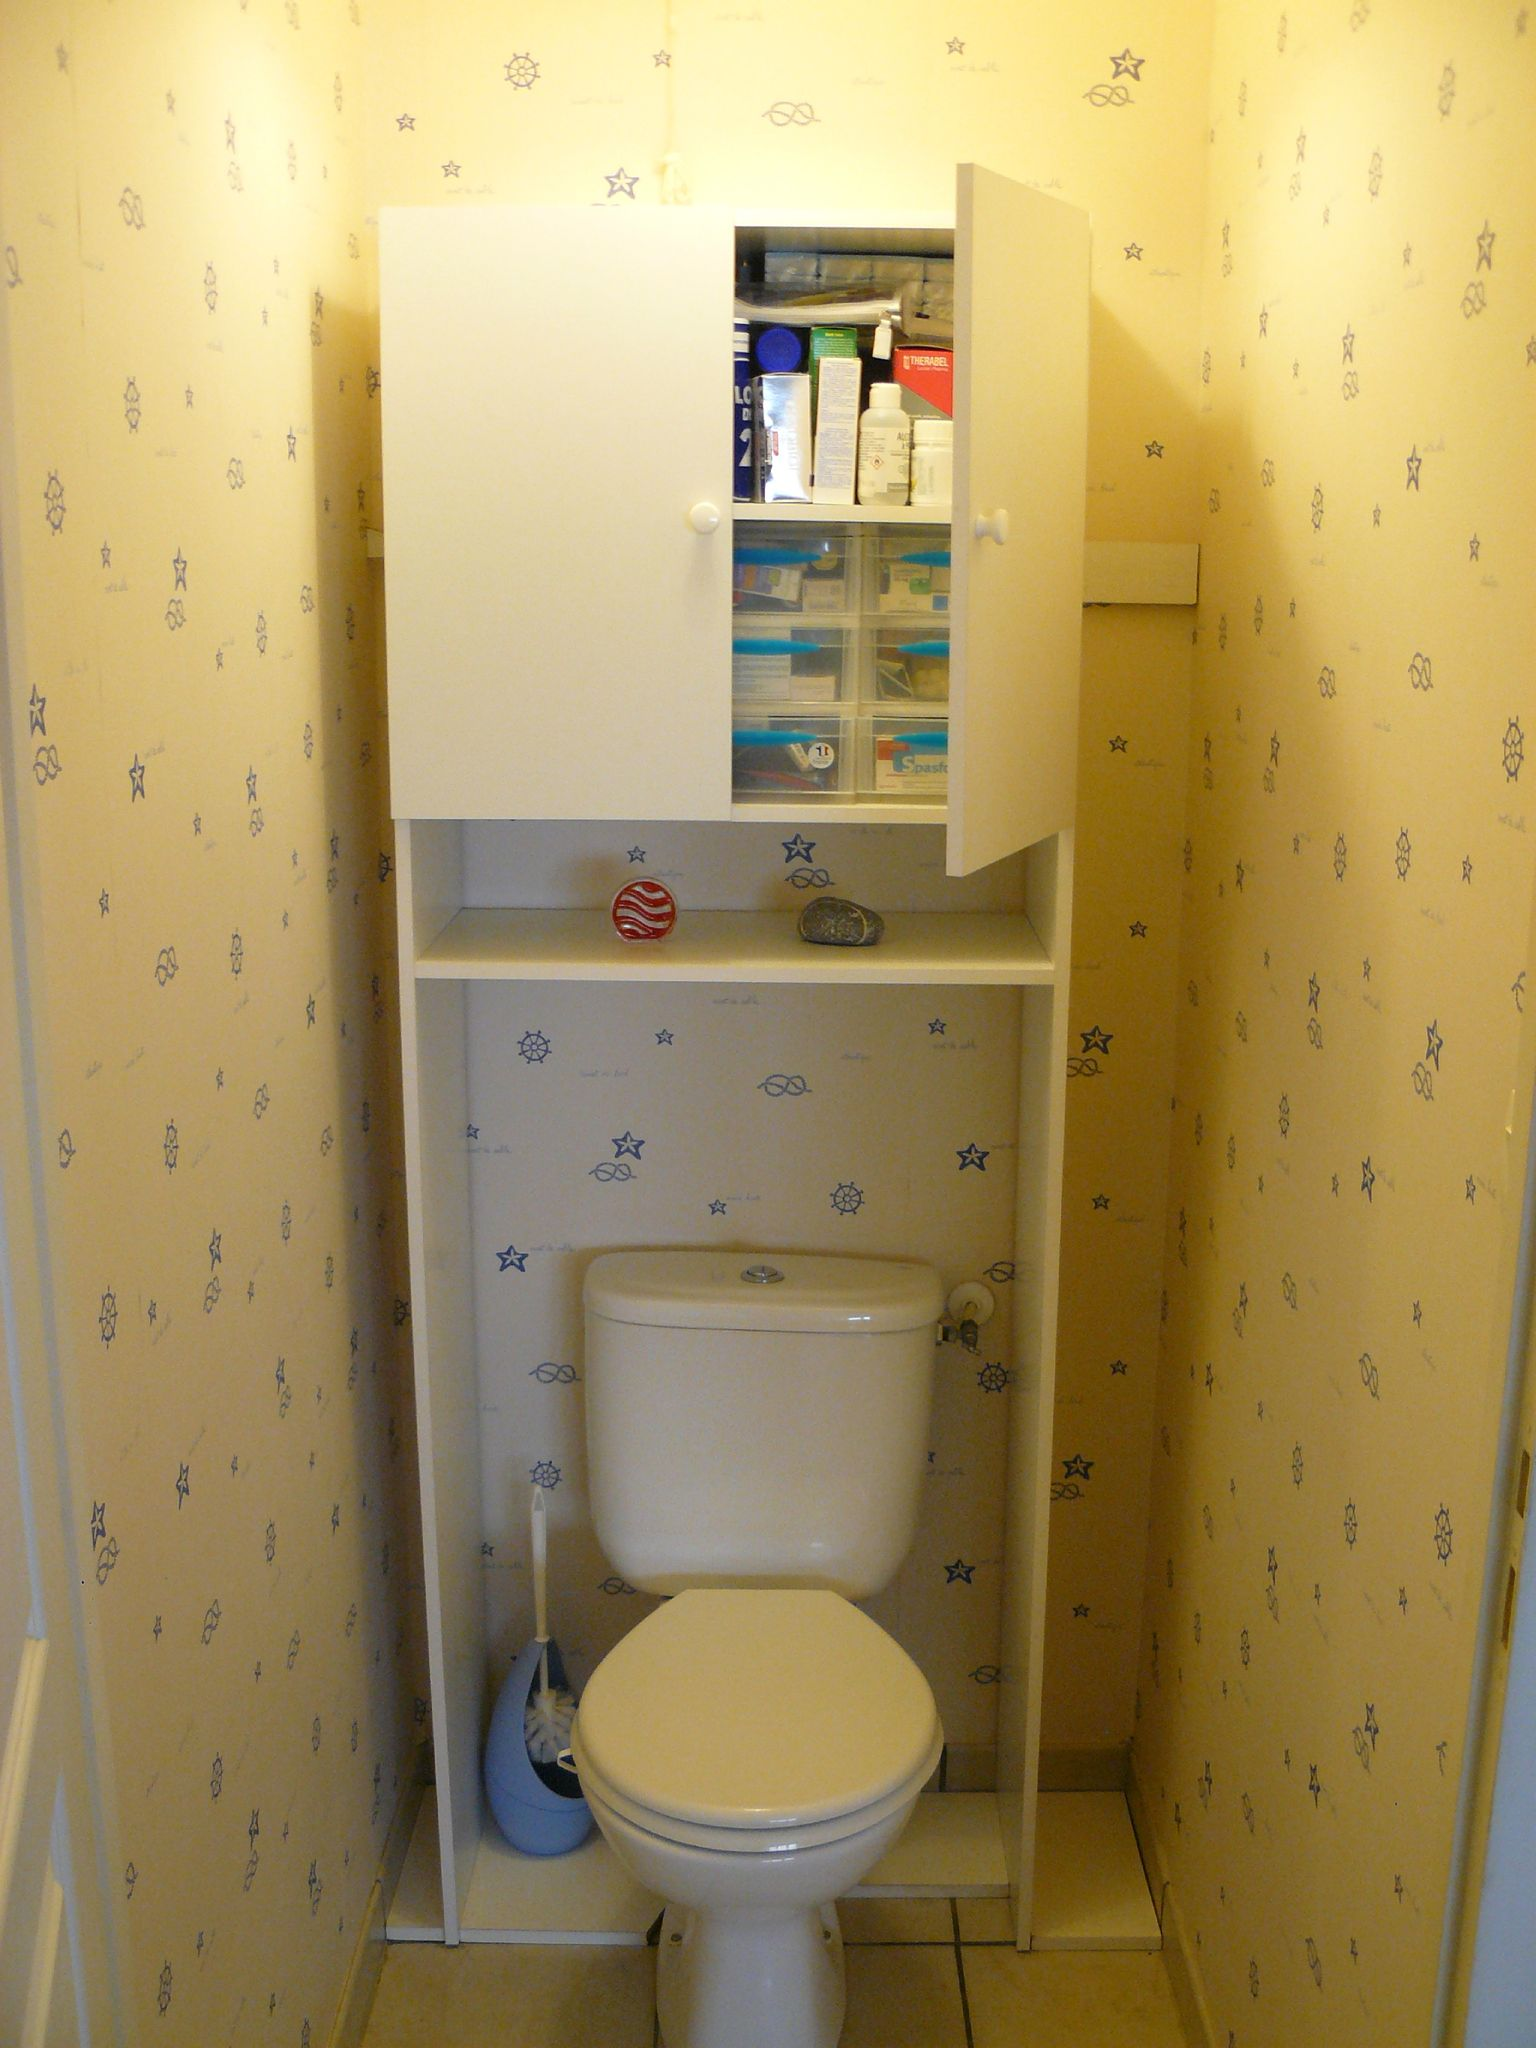 Meuble wc vide appart stef et nono videappartquebec for Table de toilette acrylique ikea